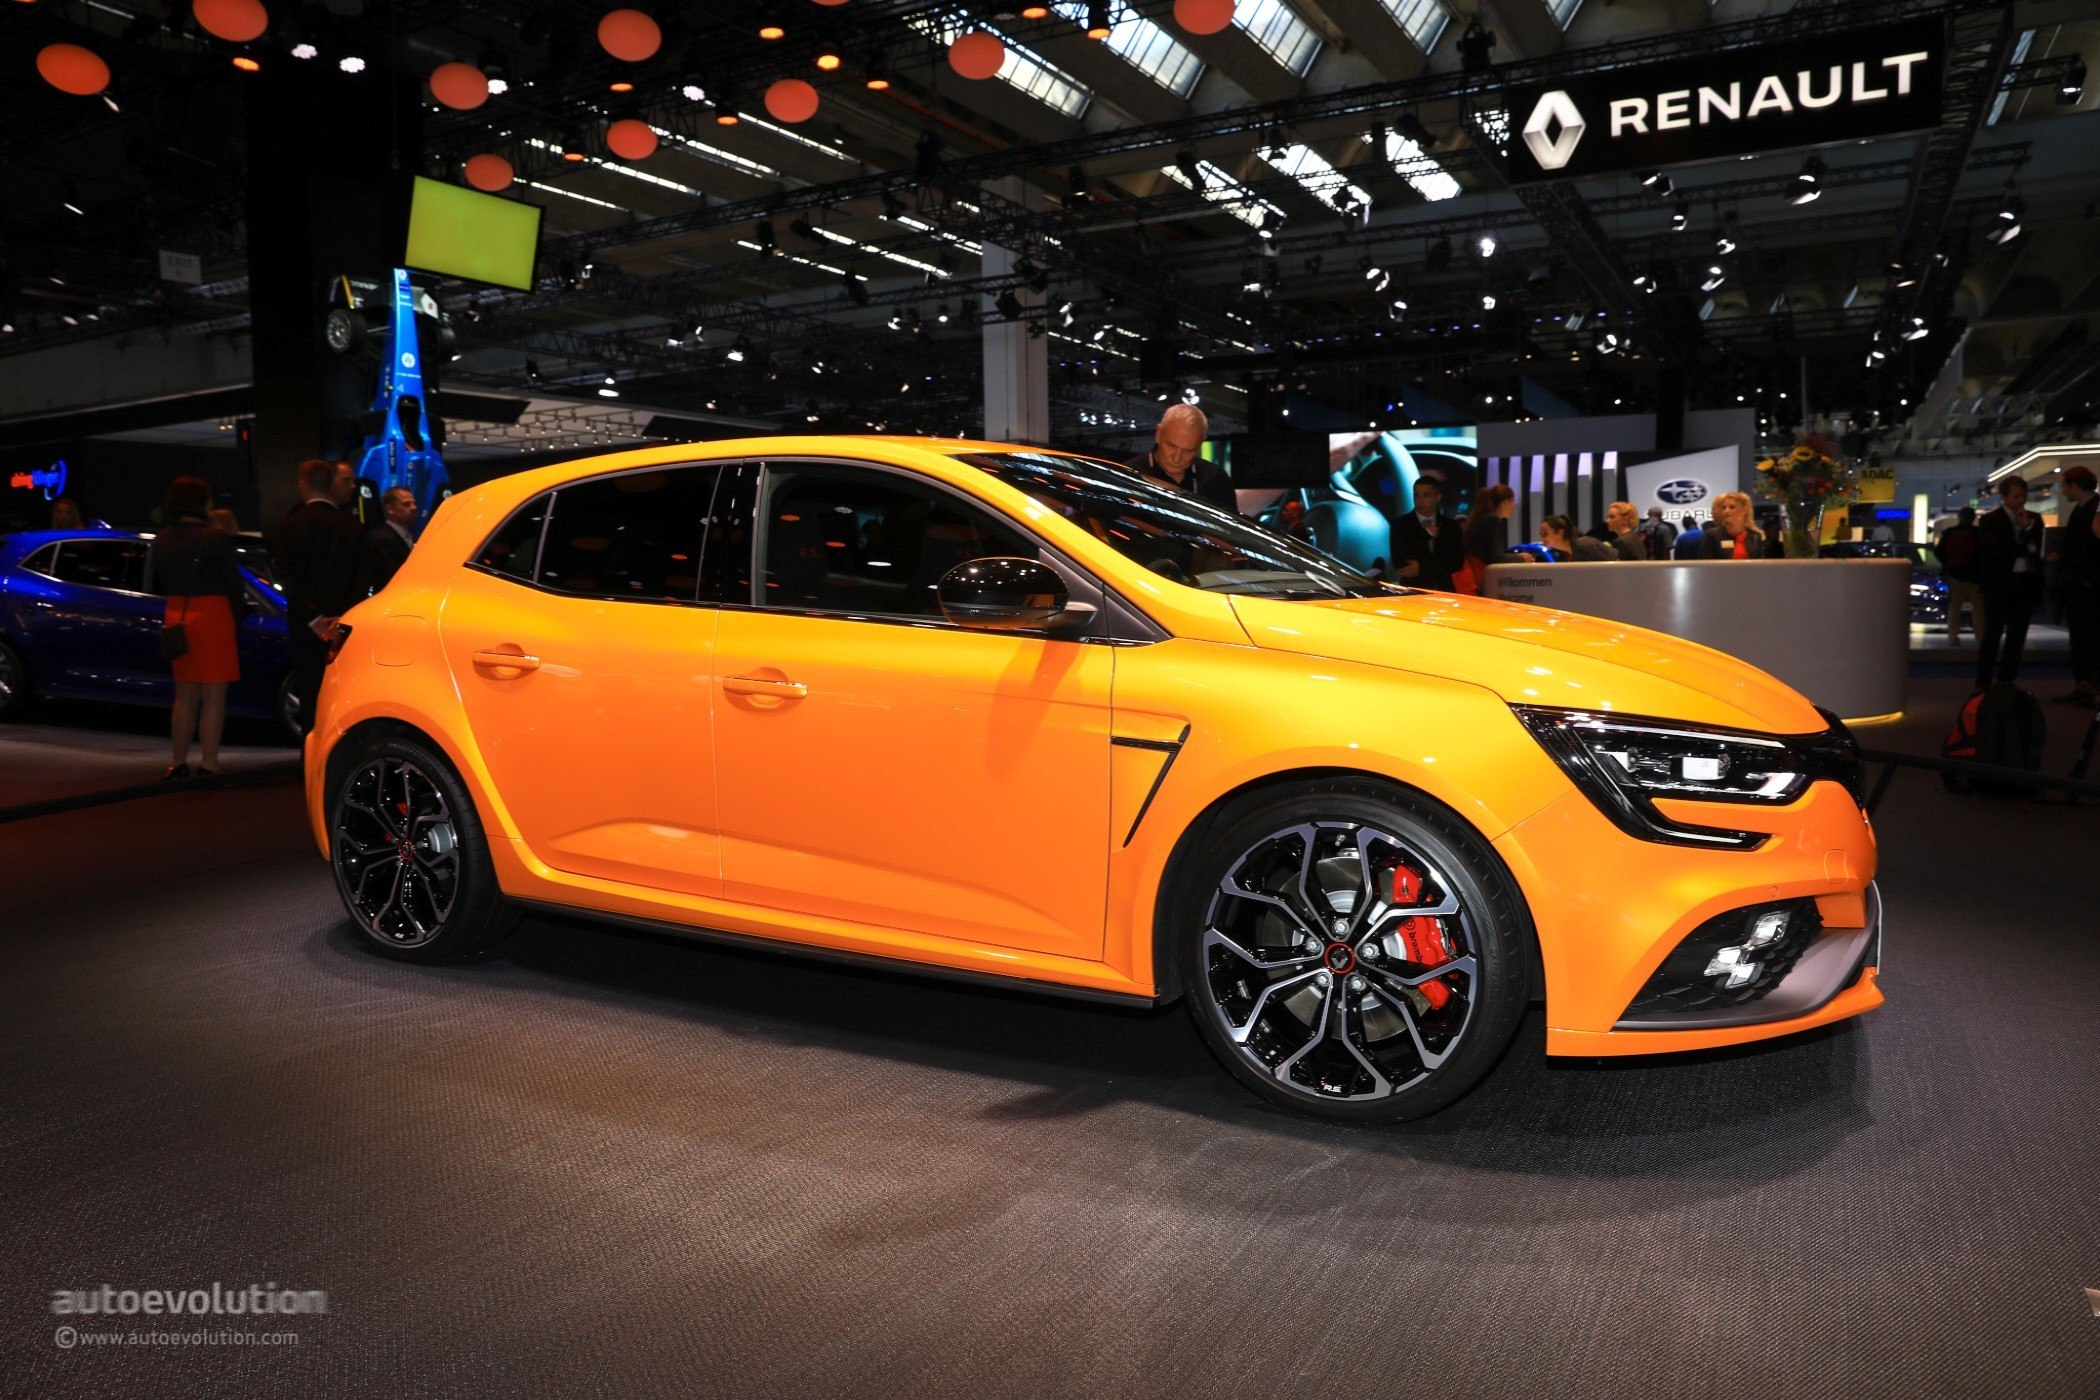 Renault Megane Rs 2017 >> Otto Mobile To Release 1 18 Renault Megane Rs 2017 Soon In